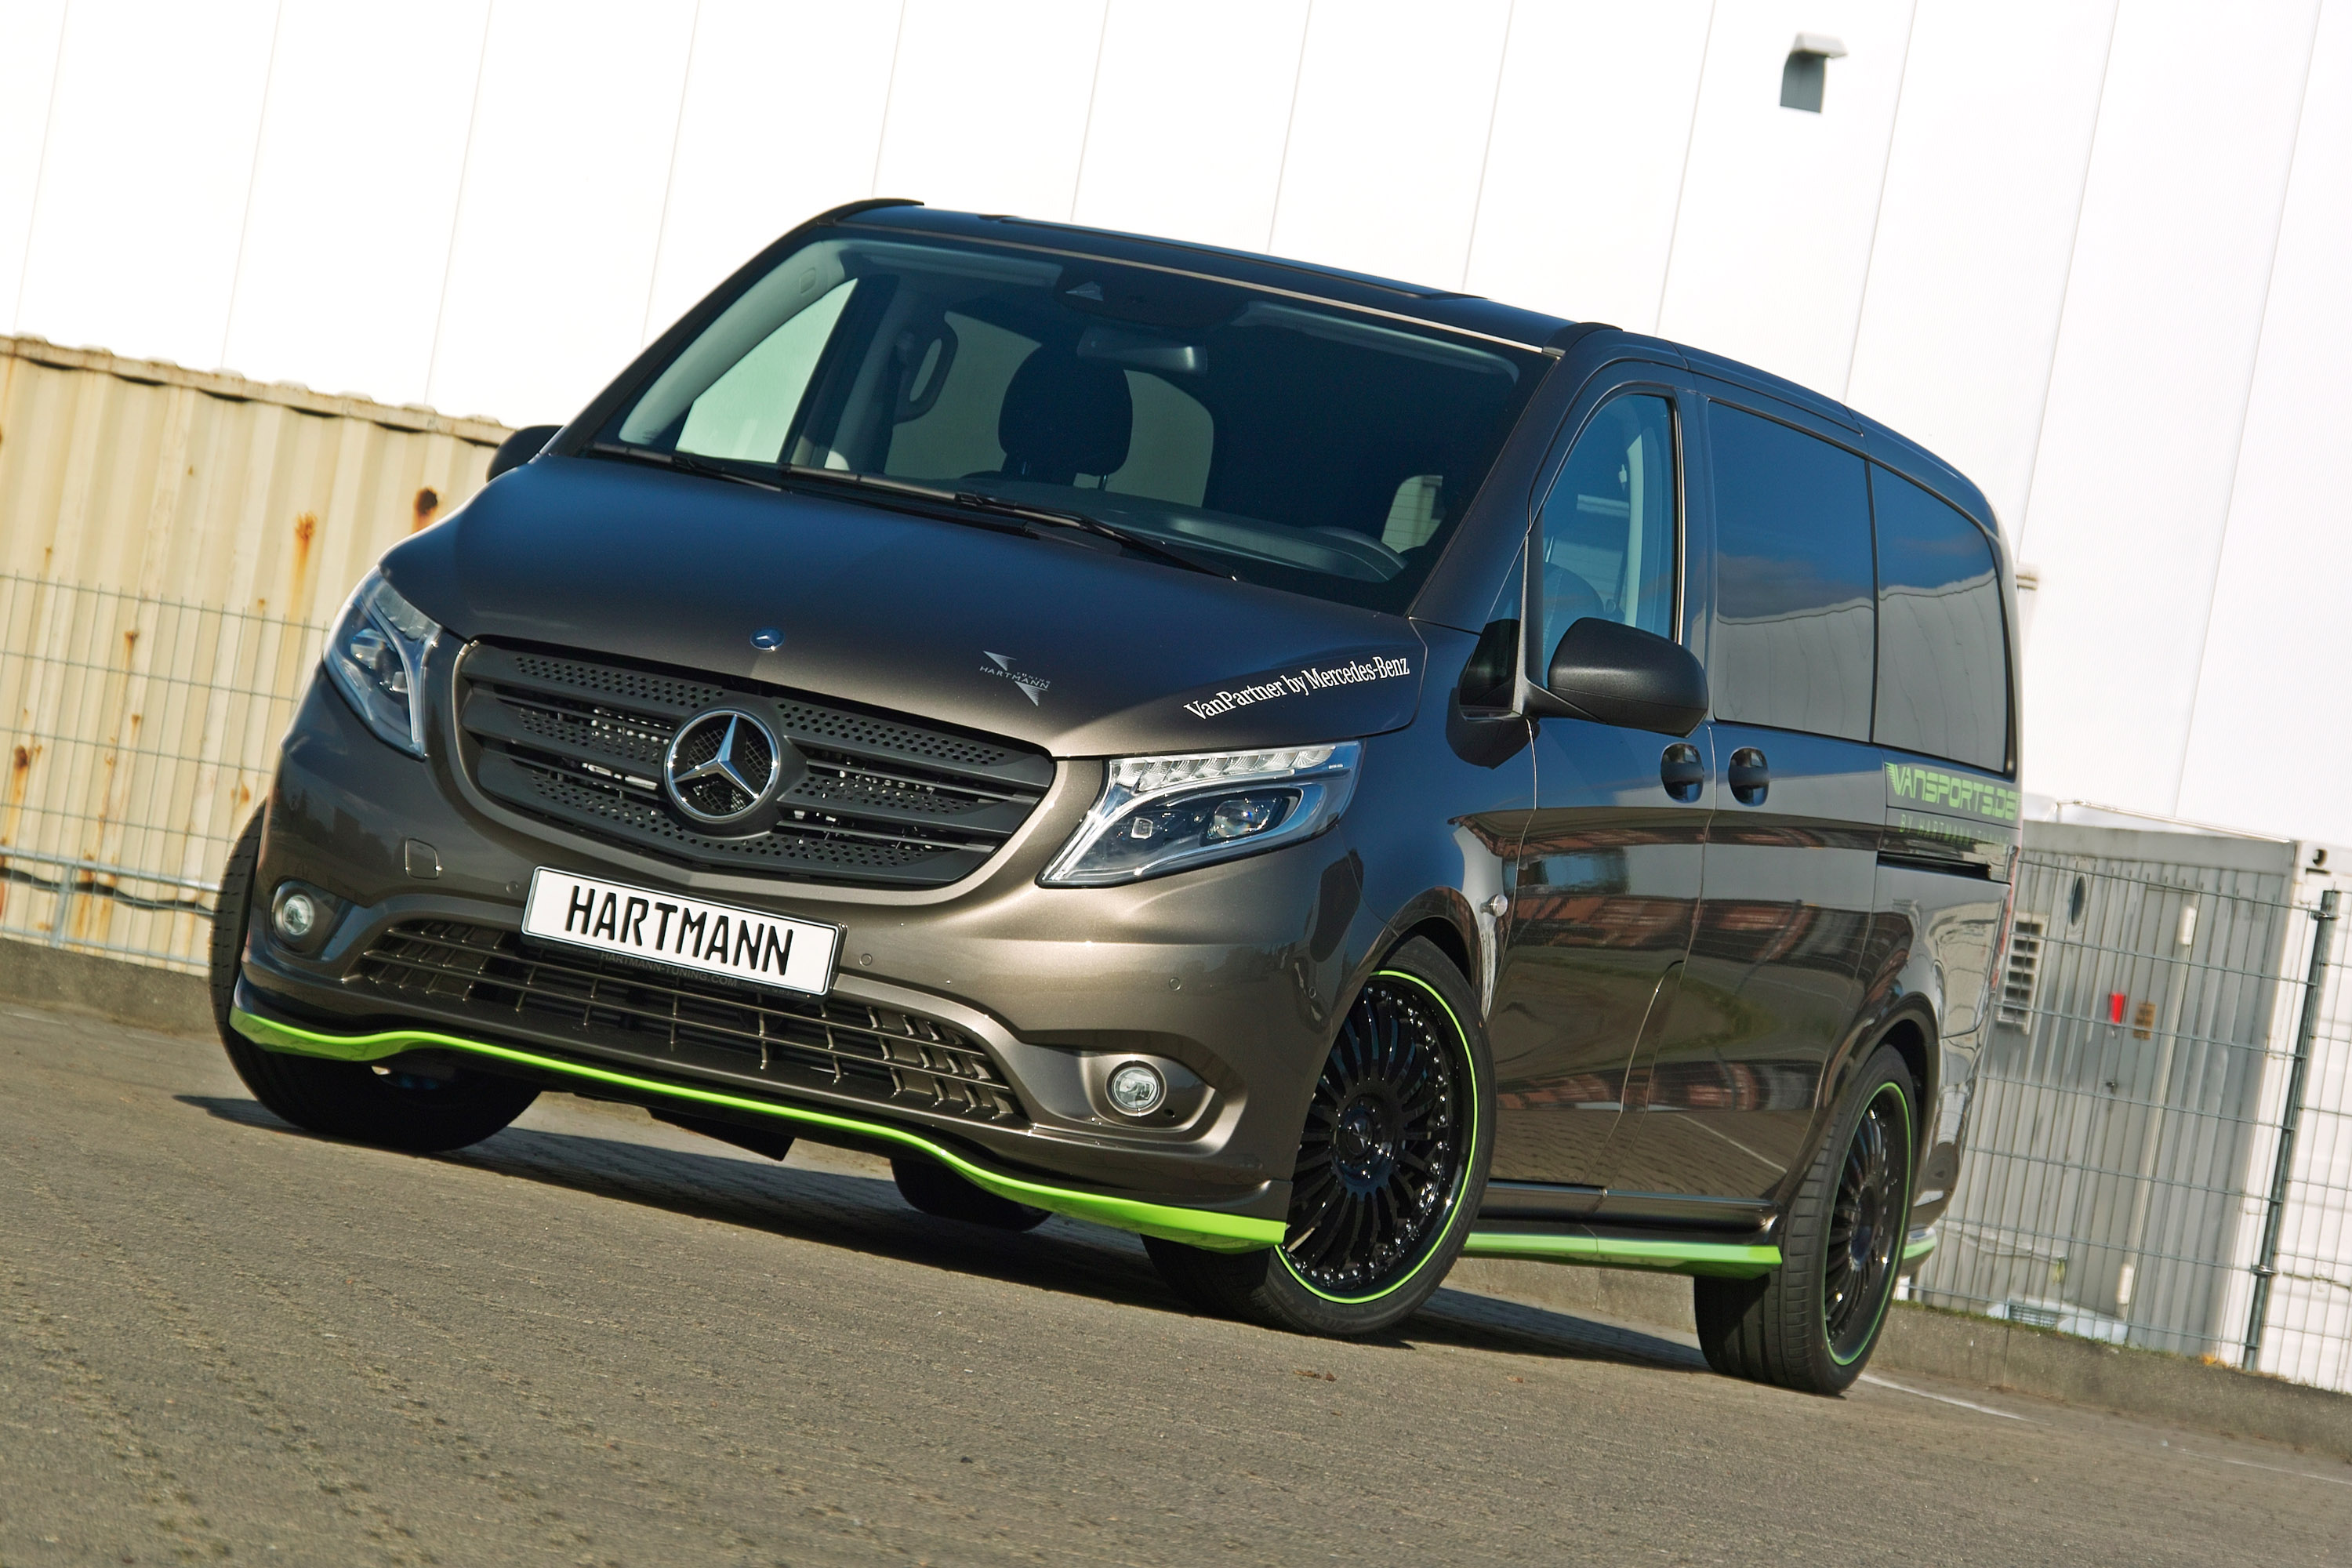 hartmann tuning 2014 yeni mercedes vito. Black Bedroom Furniture Sets. Home Design Ideas